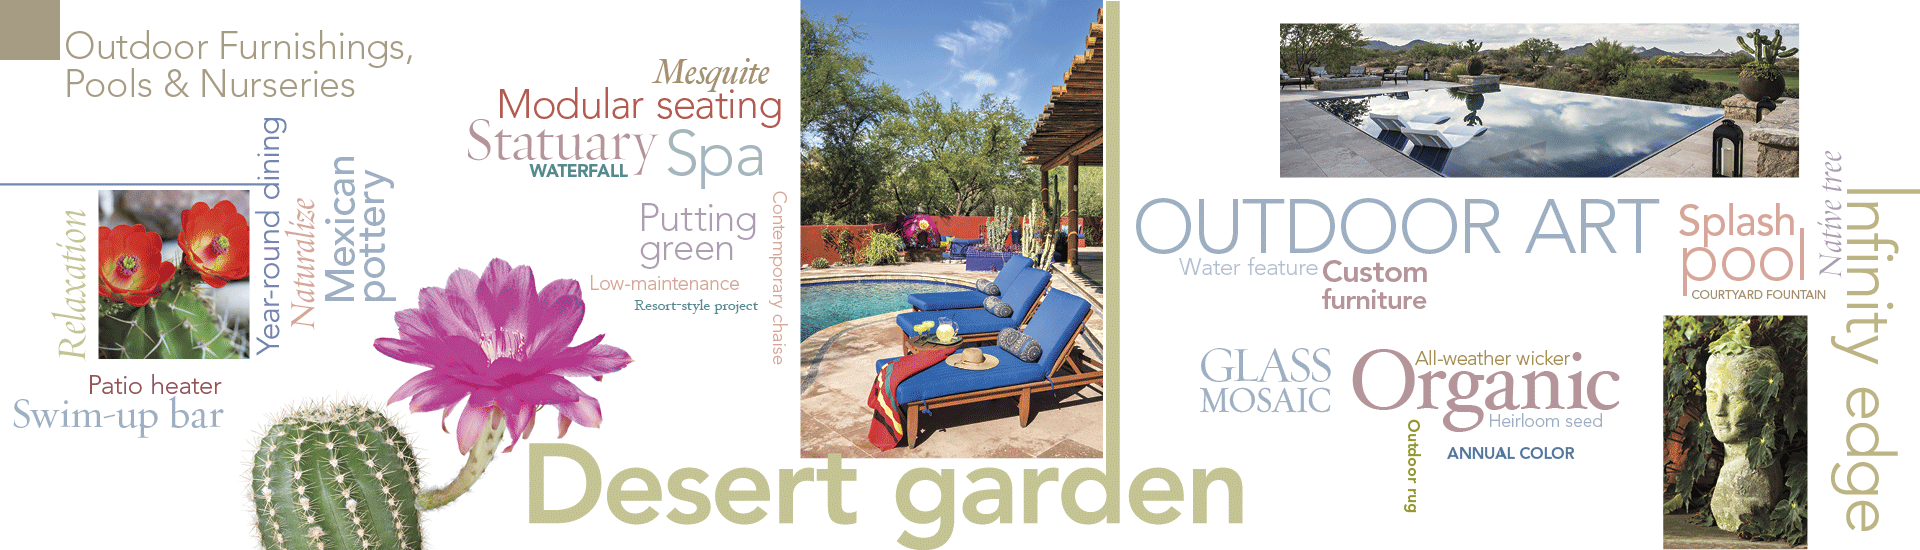 Outdoor Furnishings, Pools & Nurseries